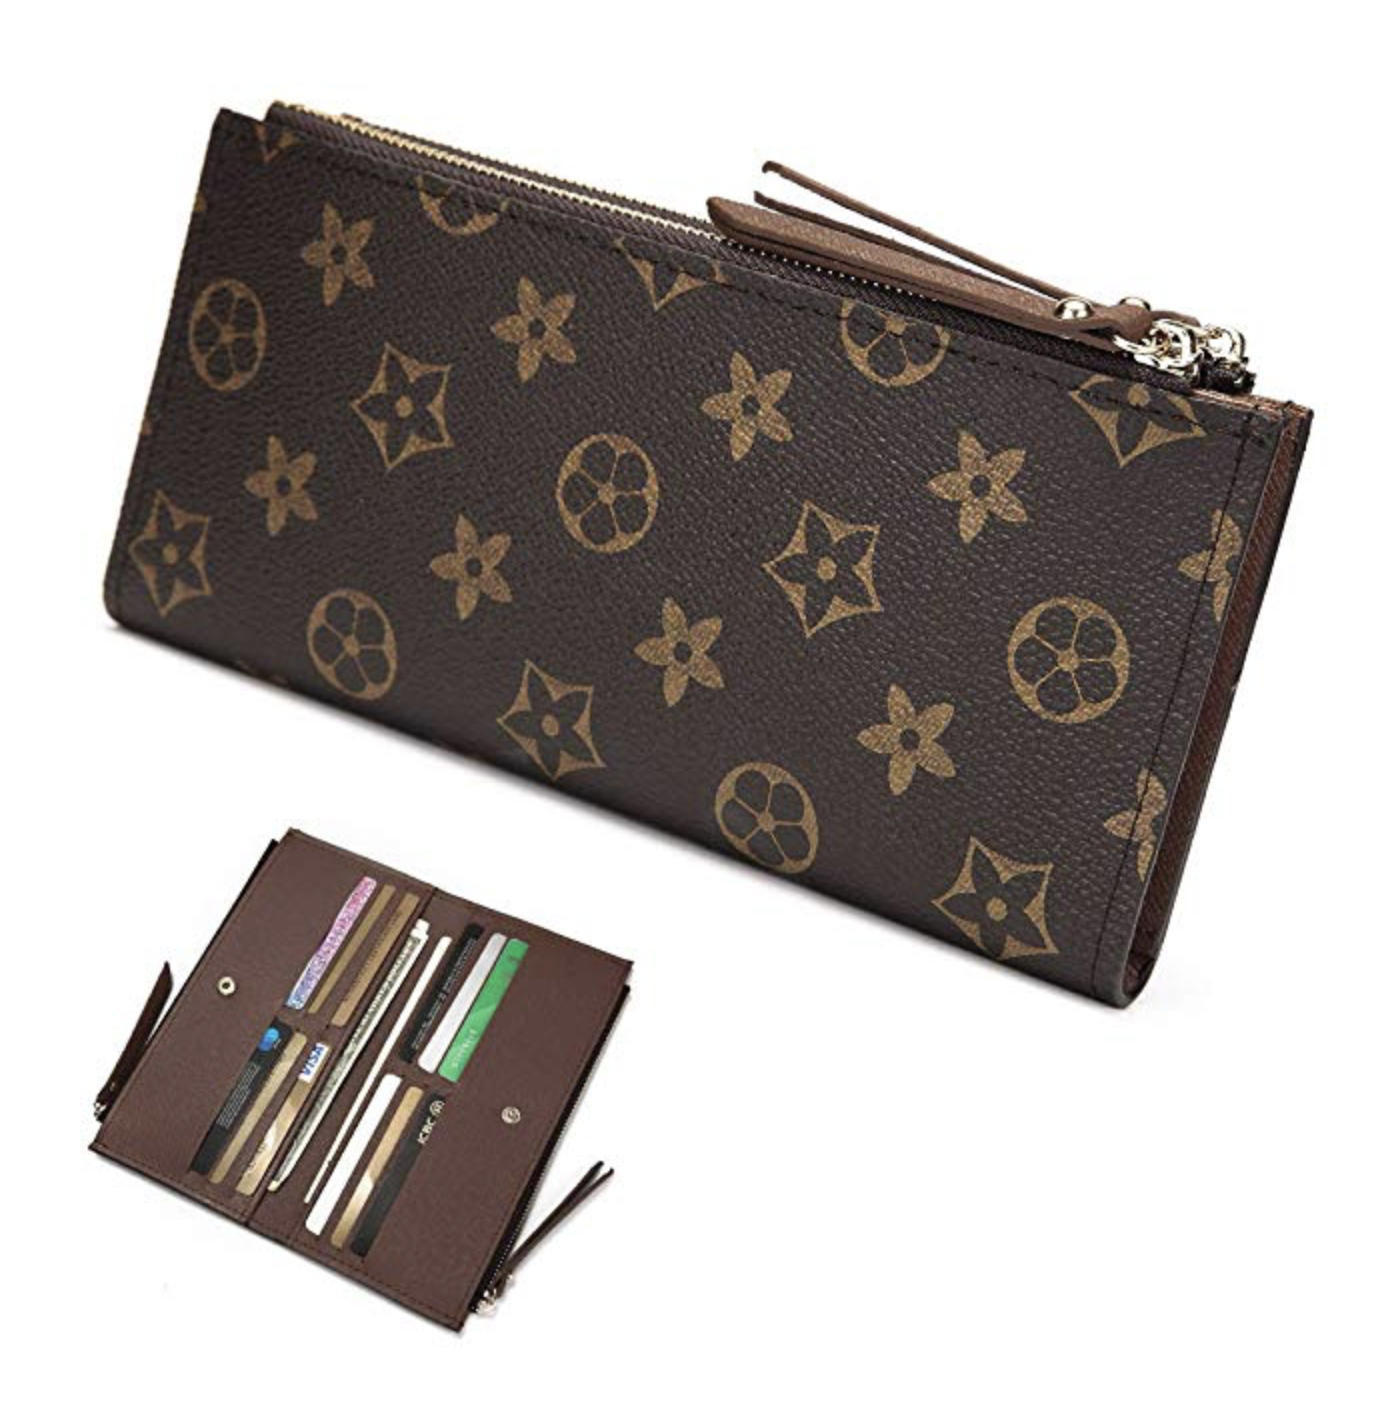 Louis Vuitton Inspired Wallet:  UNDER $20